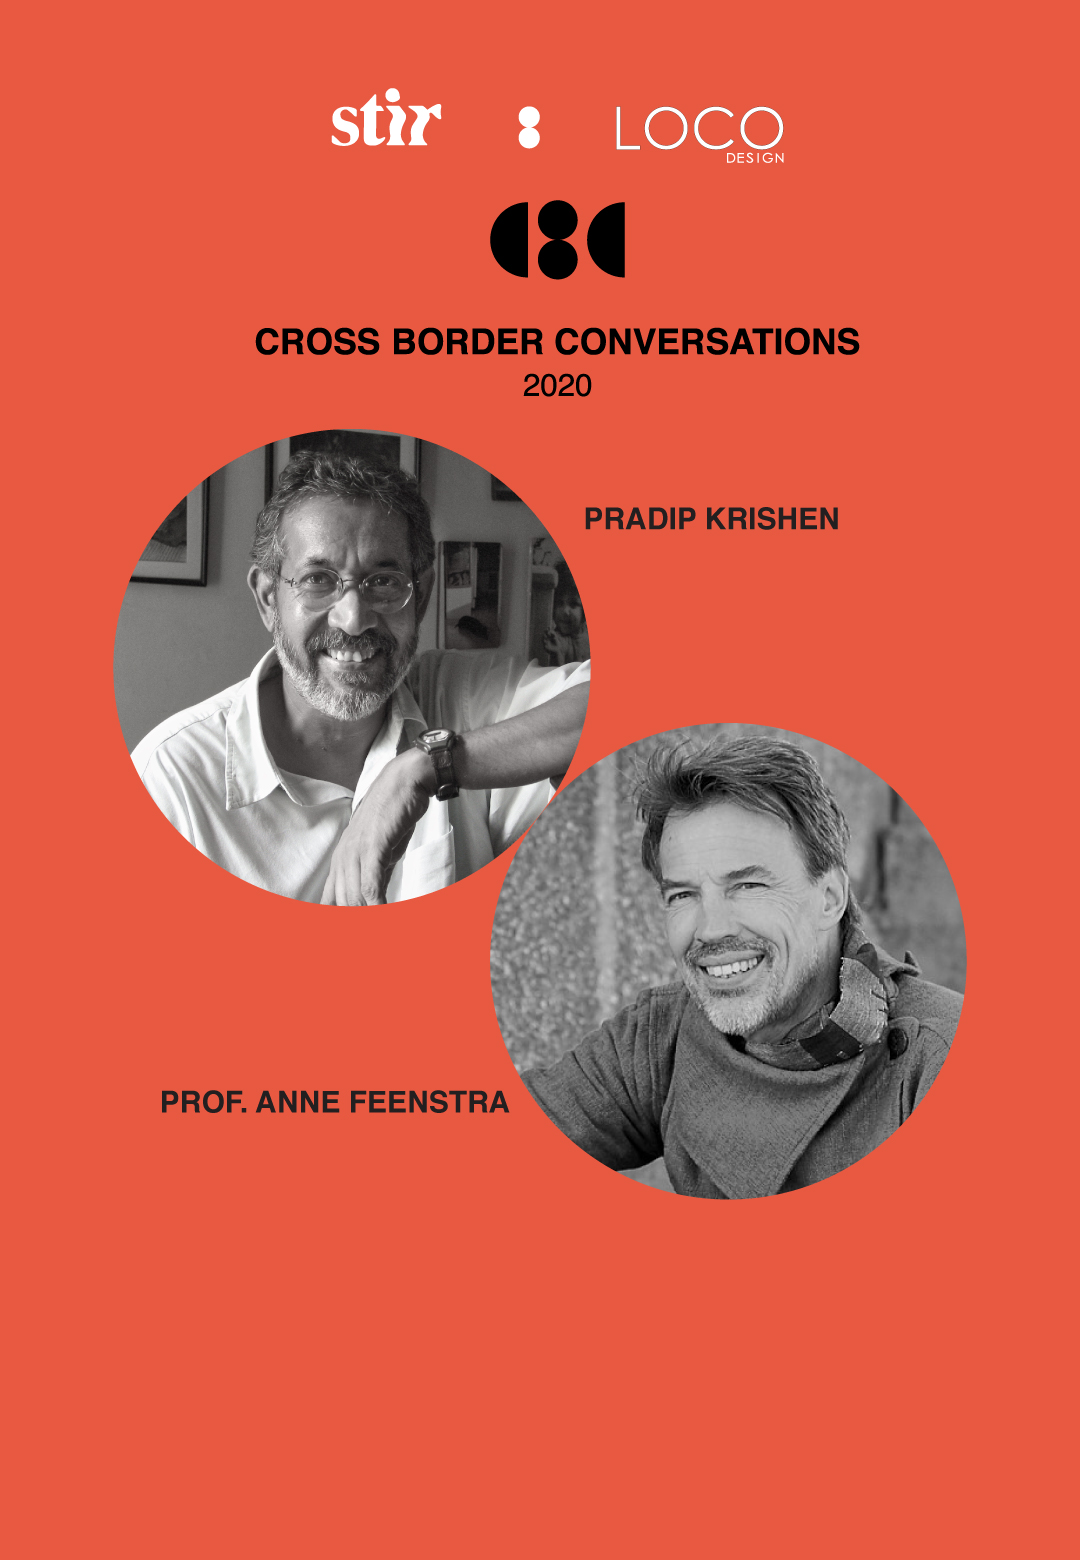 Cross Border Conversations | Pradip Krishen X Prof. Anne Feenstra | STIR X LOCO Design